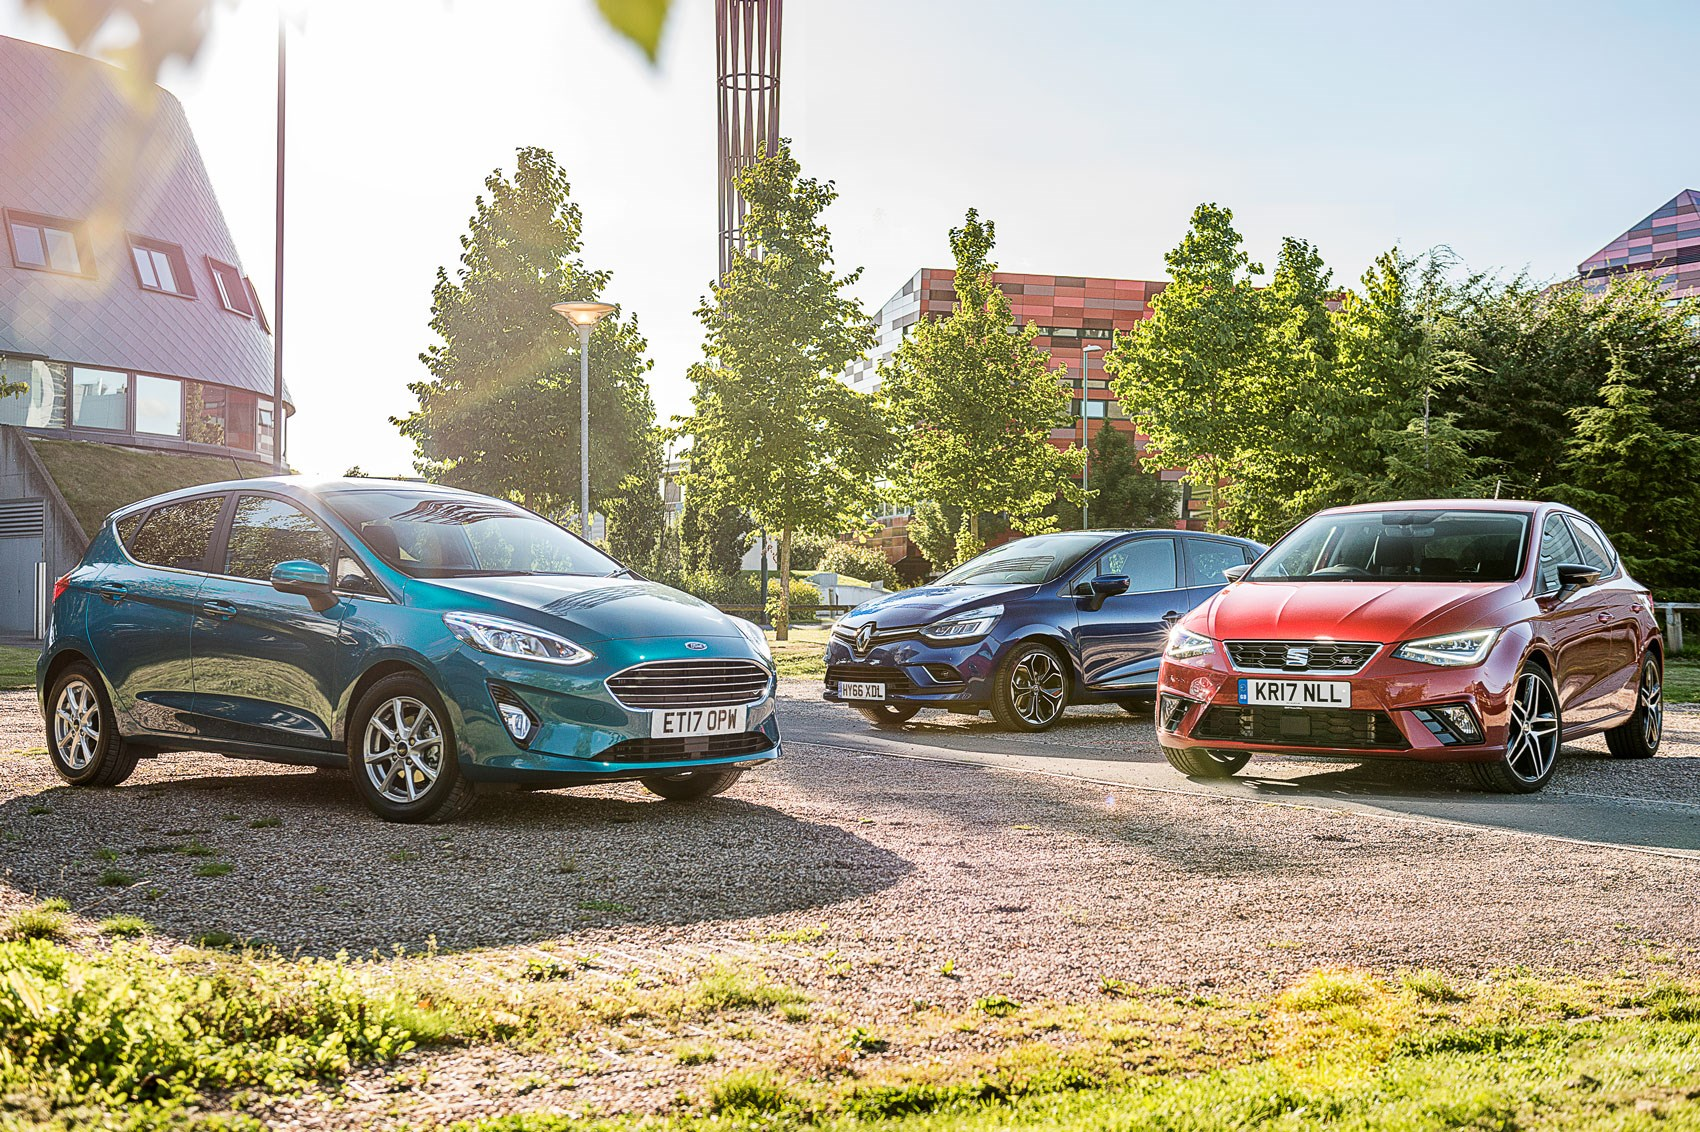 Ford Fiesta vs Seat Ibiza vs Renault Clio triple test (2017) review on 2011 ford mustang, 2011 ford taurus, 2011 ford tahoe, 2011 ford fusion, 4wd fiesta, 2011 ford eclipse, 2011 ford sport trac limited, 2011 ford gt500, 2011 ford f-650, 2011 ford ranger pickup, 2011 ford f-150 harley, 2011 ford fairlane, 2011 ford mariner, 2011 ford accent, 2011 ford f59, 2011 ford focus, 2011 ford edge, 2011 ford escape, 2011 ford sienna, 2011 ford exp,